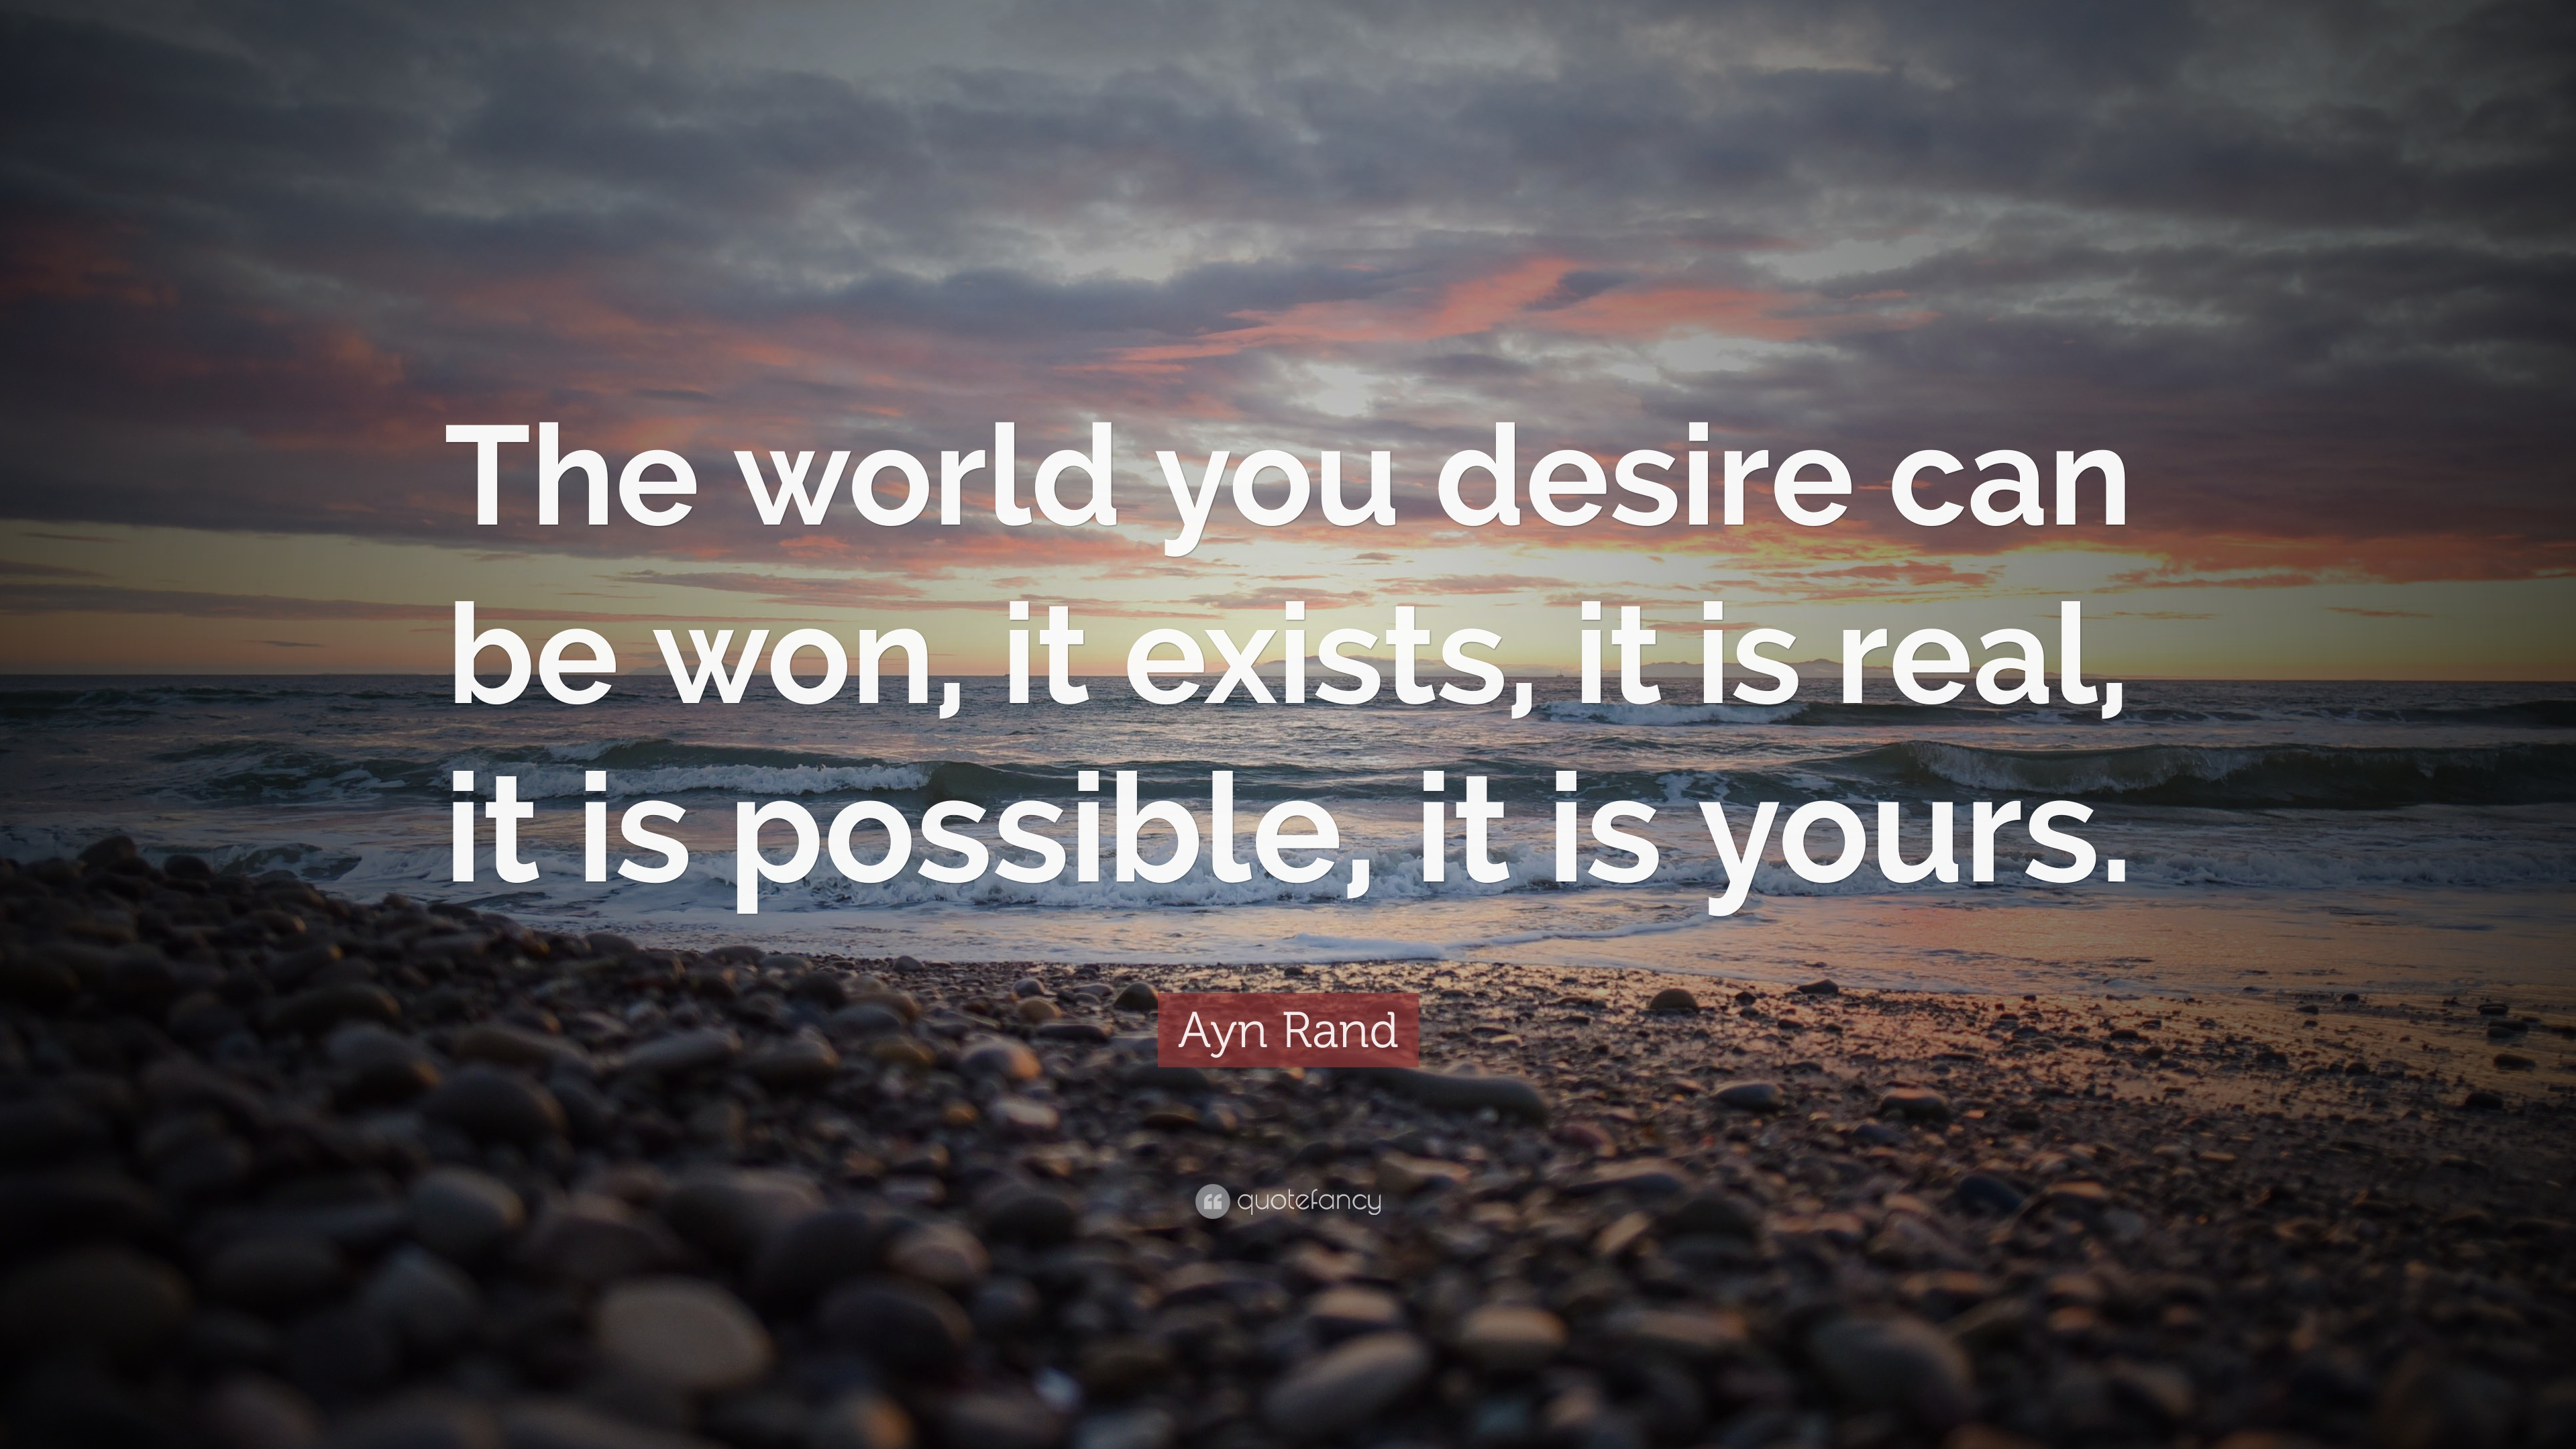 Ayn Rand Quote The World You Desire Can Be Won It Exists It Is